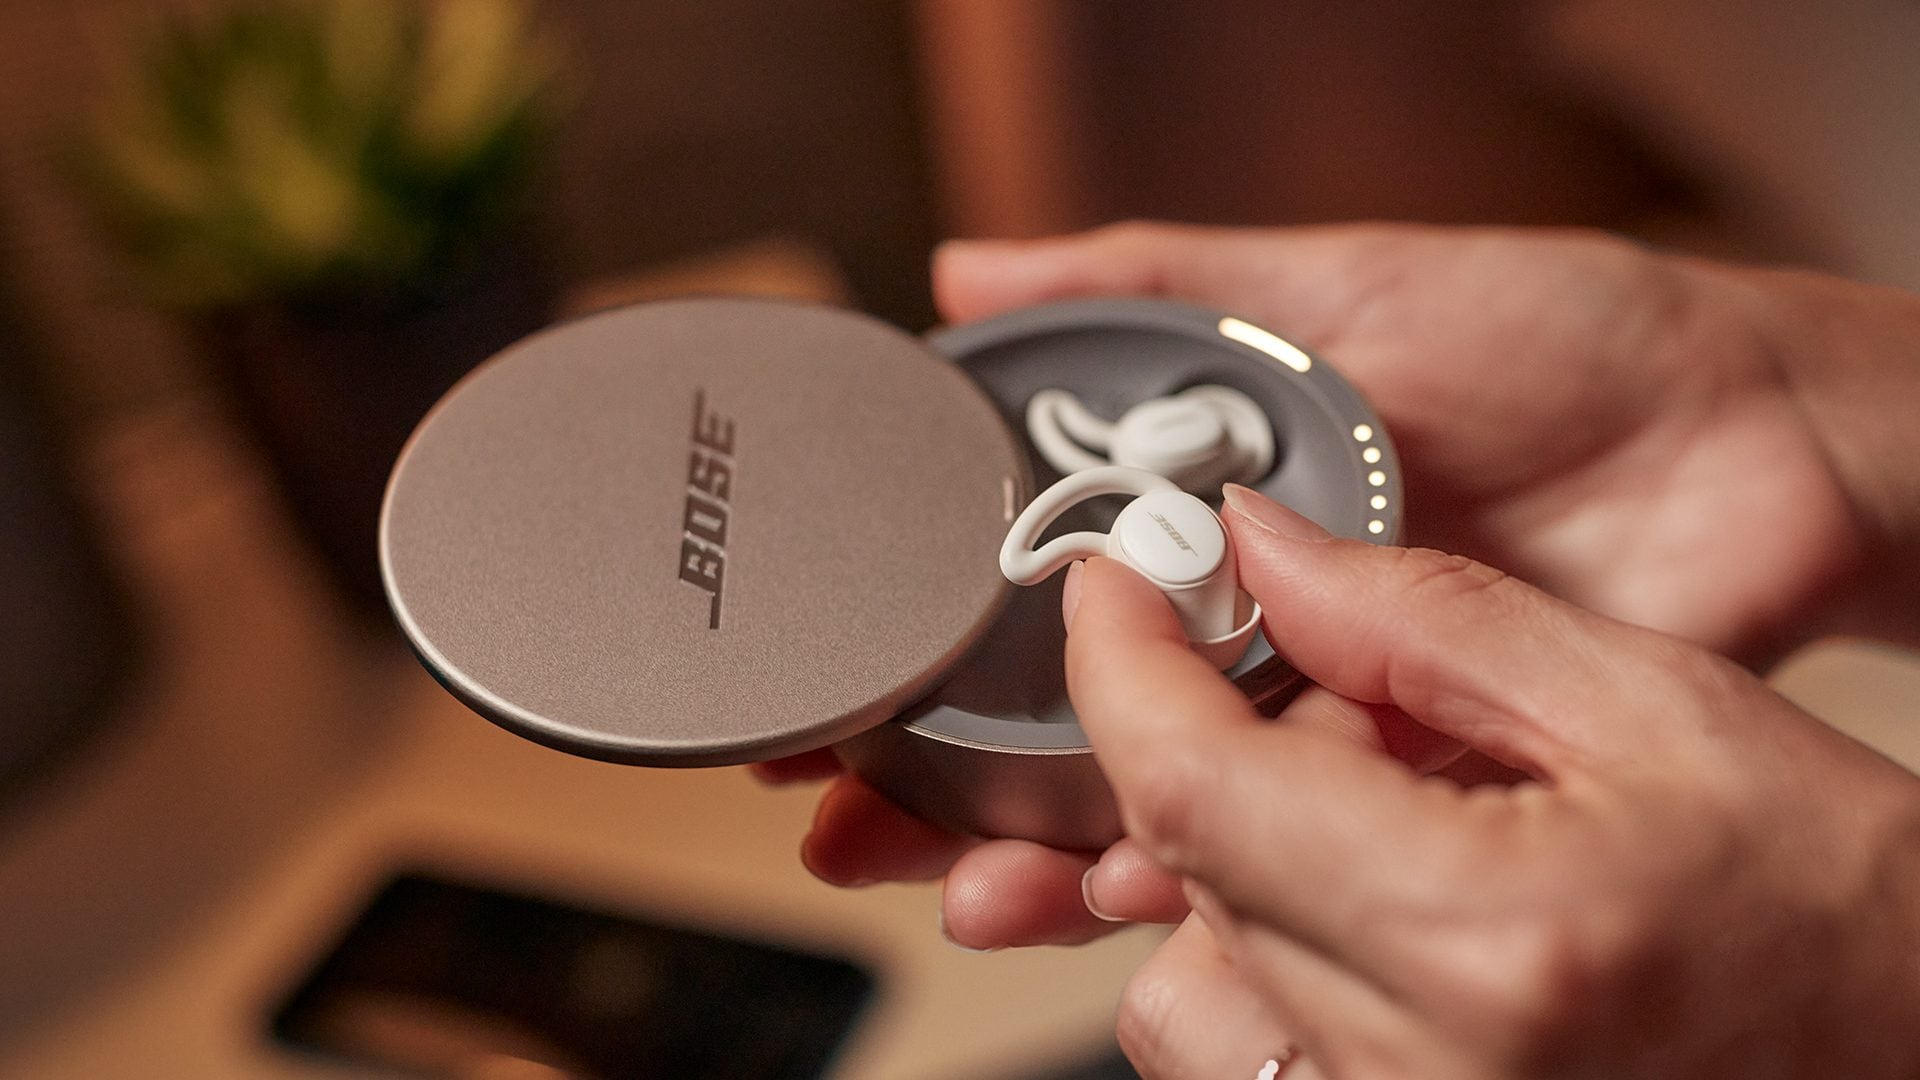 Bose Sleepbuds II noise-masking earbuds delivers relaxing sound through the Bose Sleep app